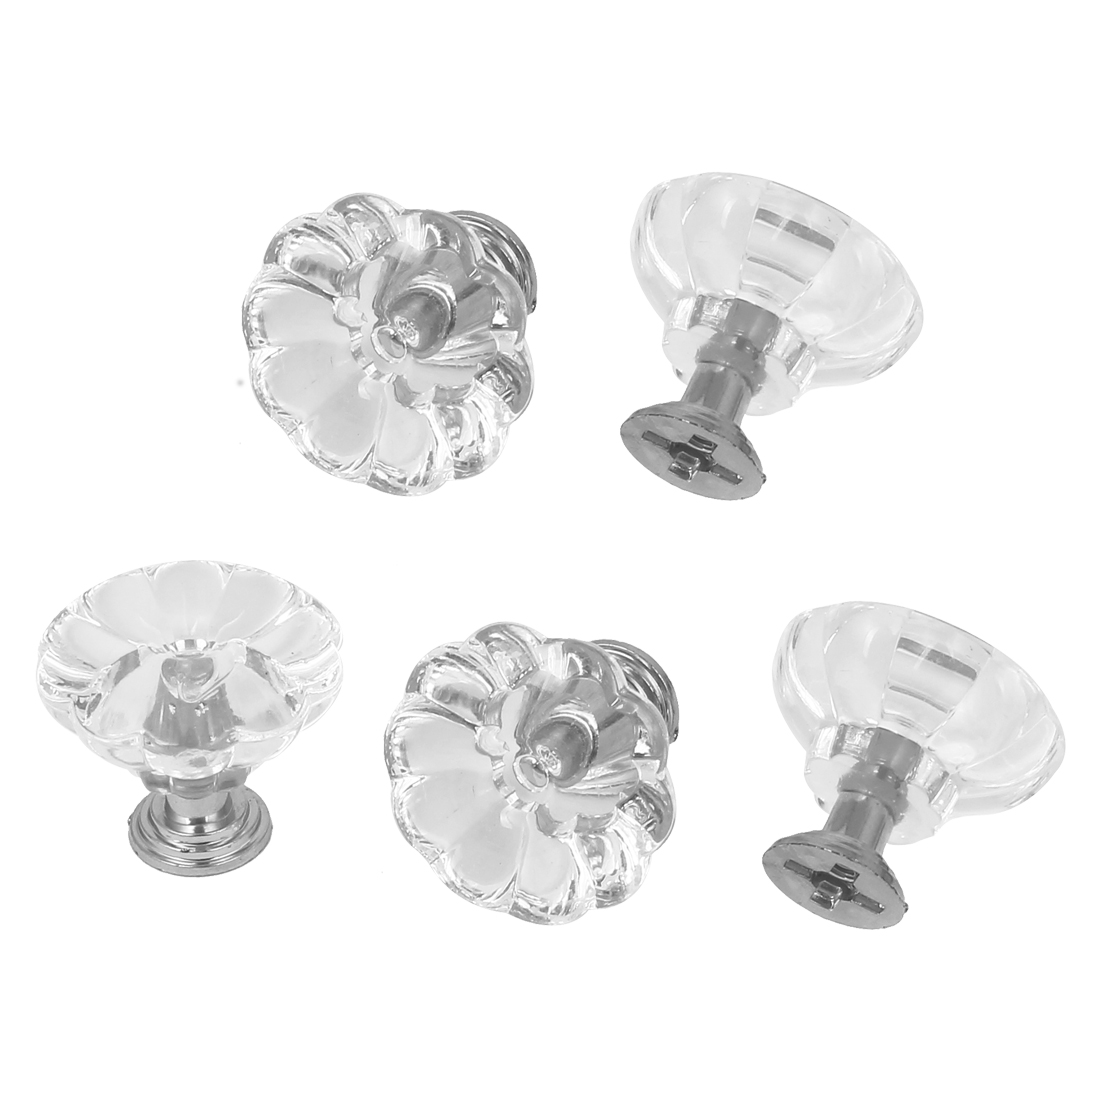 5pcs 30mm Clear Plastic Crystal Cabinet Drawer Door Pulls Knobs Handle